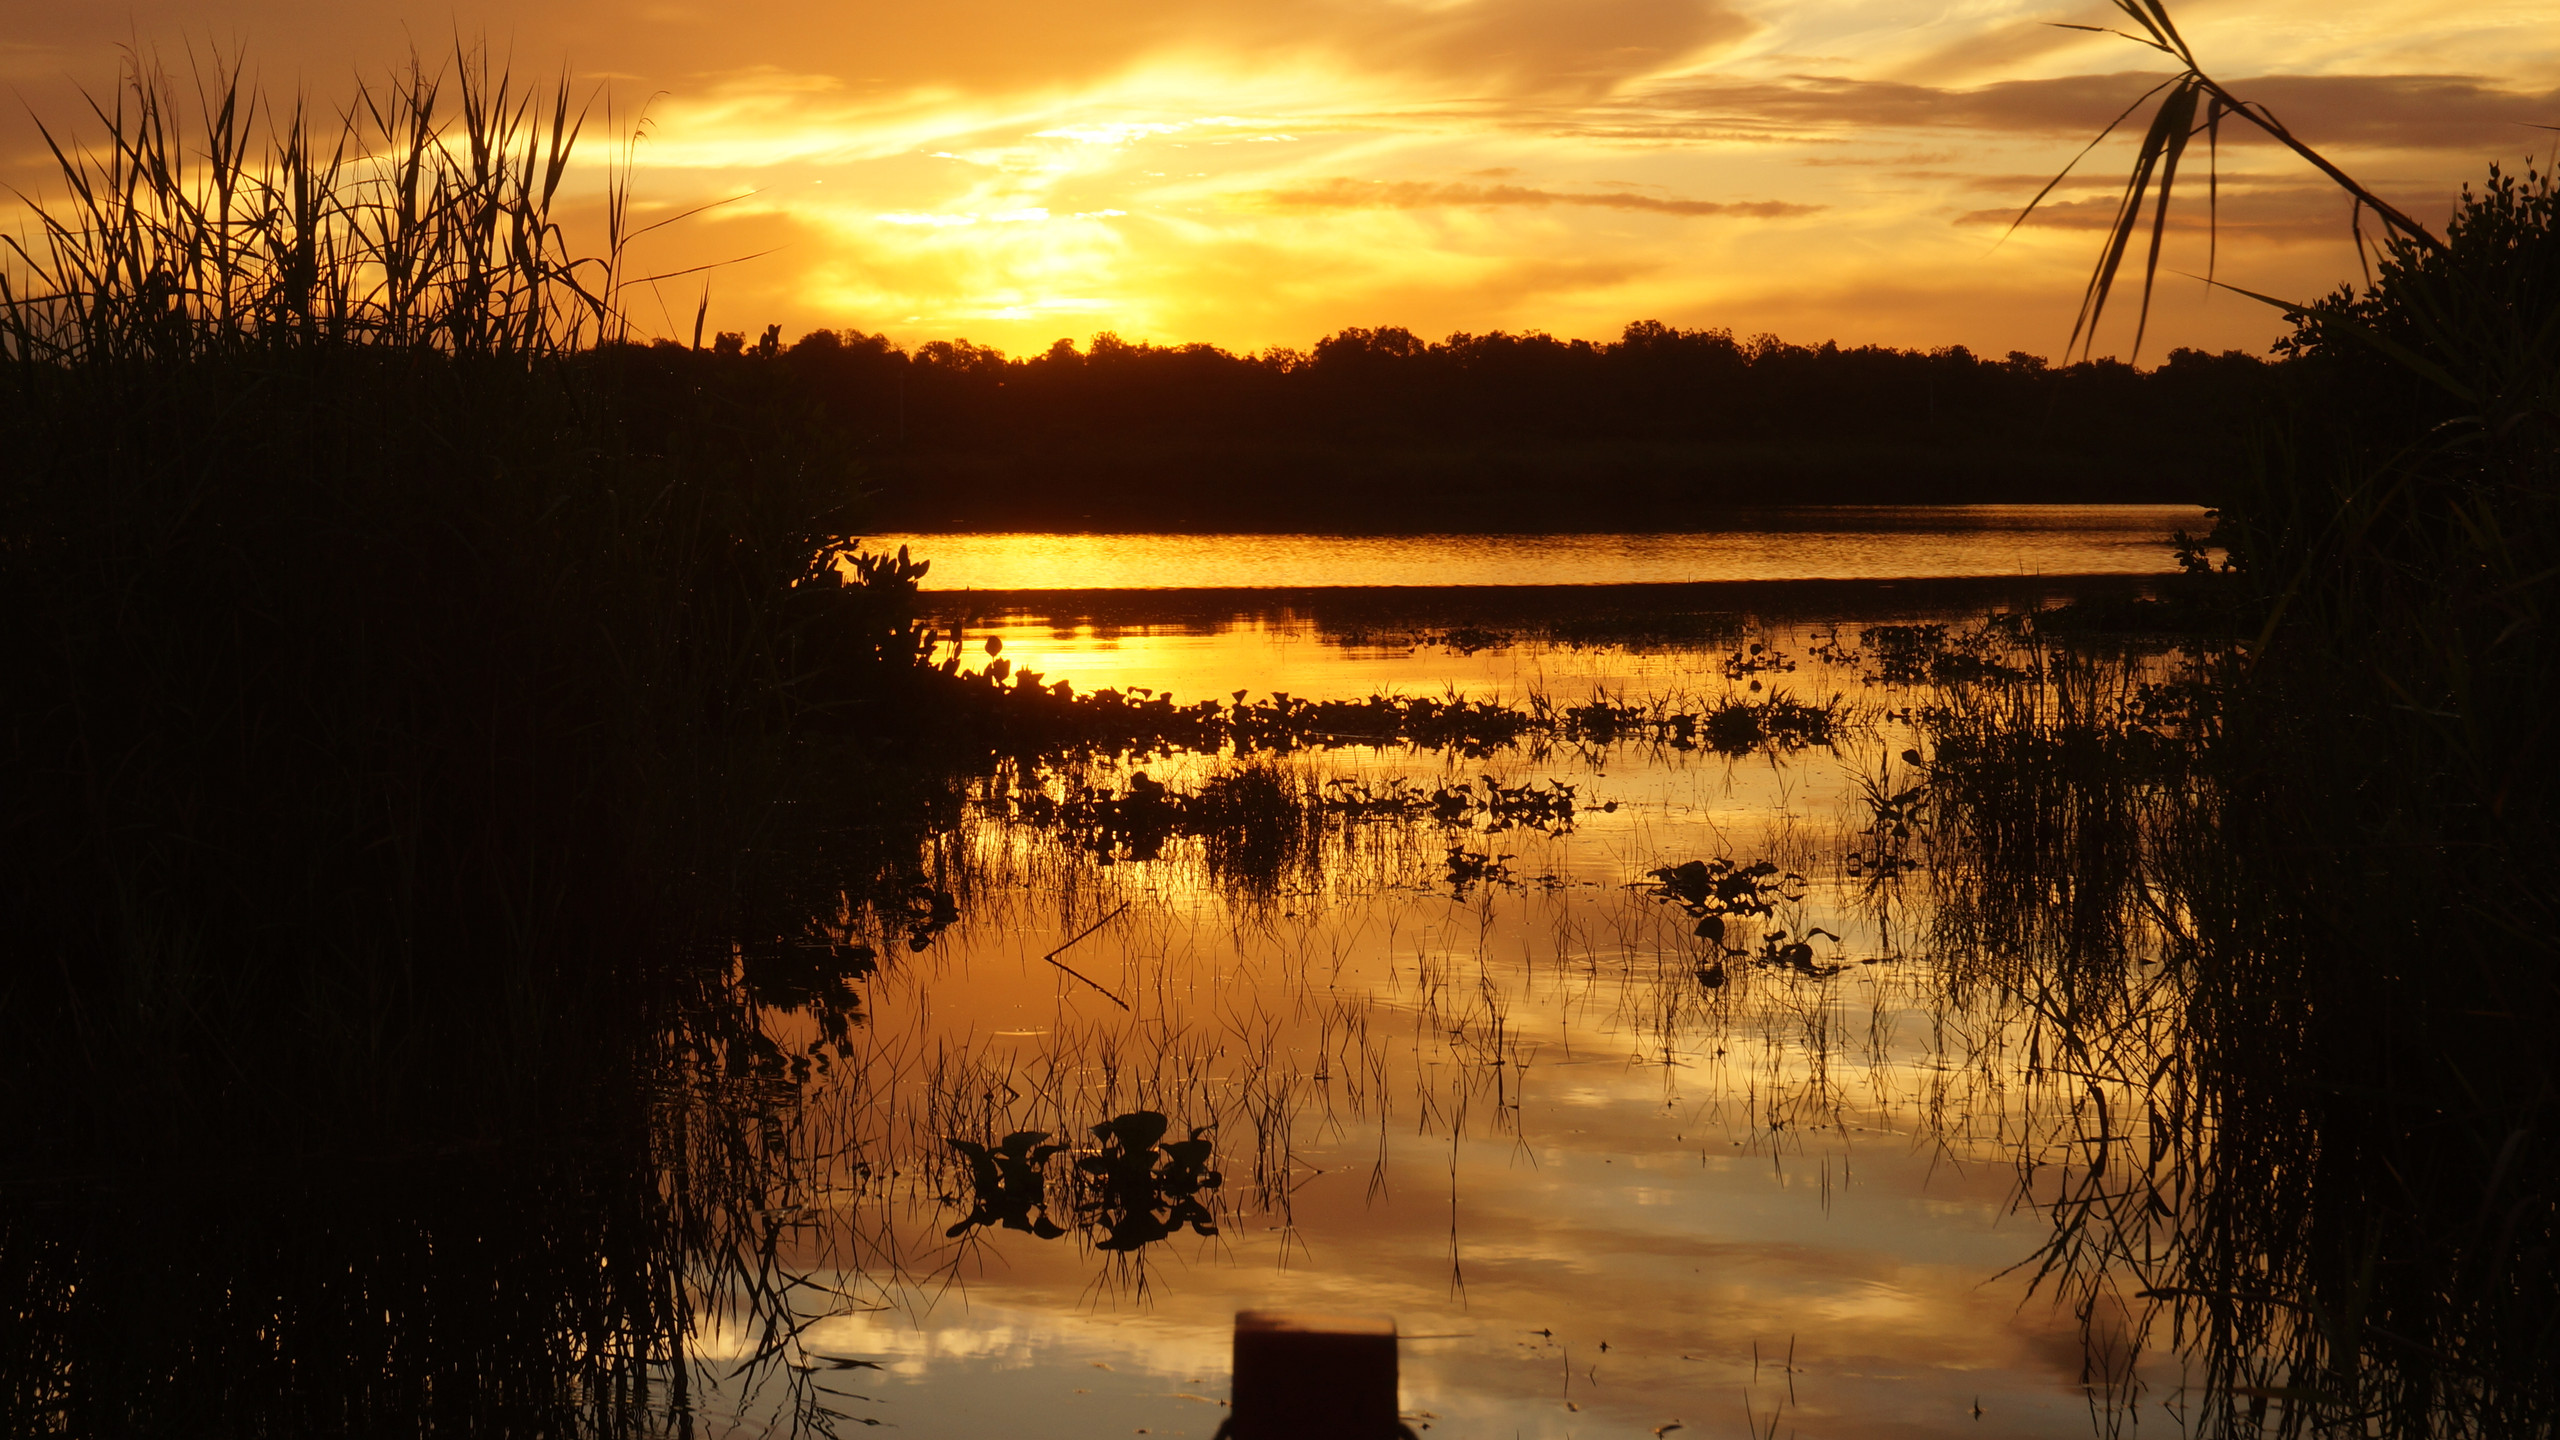 Sunrise on the mangrove swamp